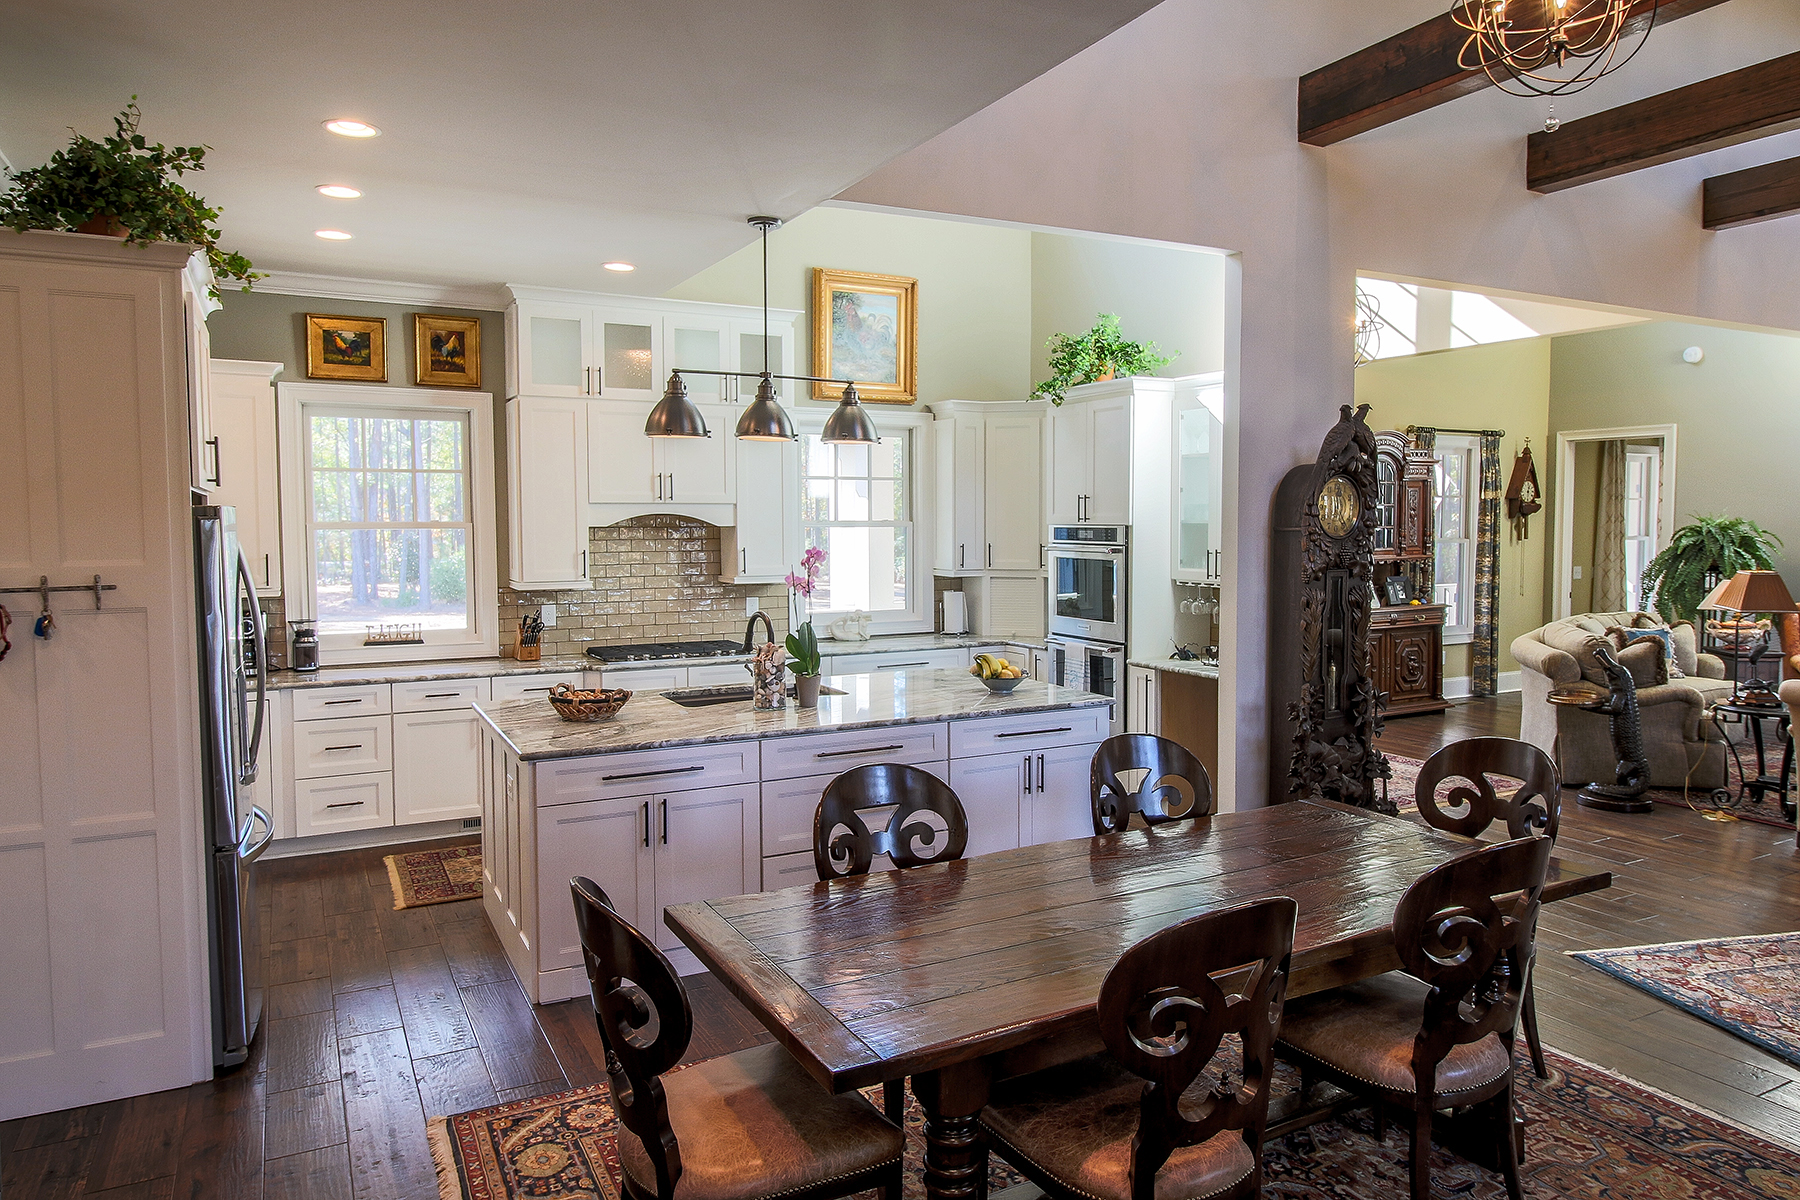 PG - Pond Dining to kitchen RS.jpg